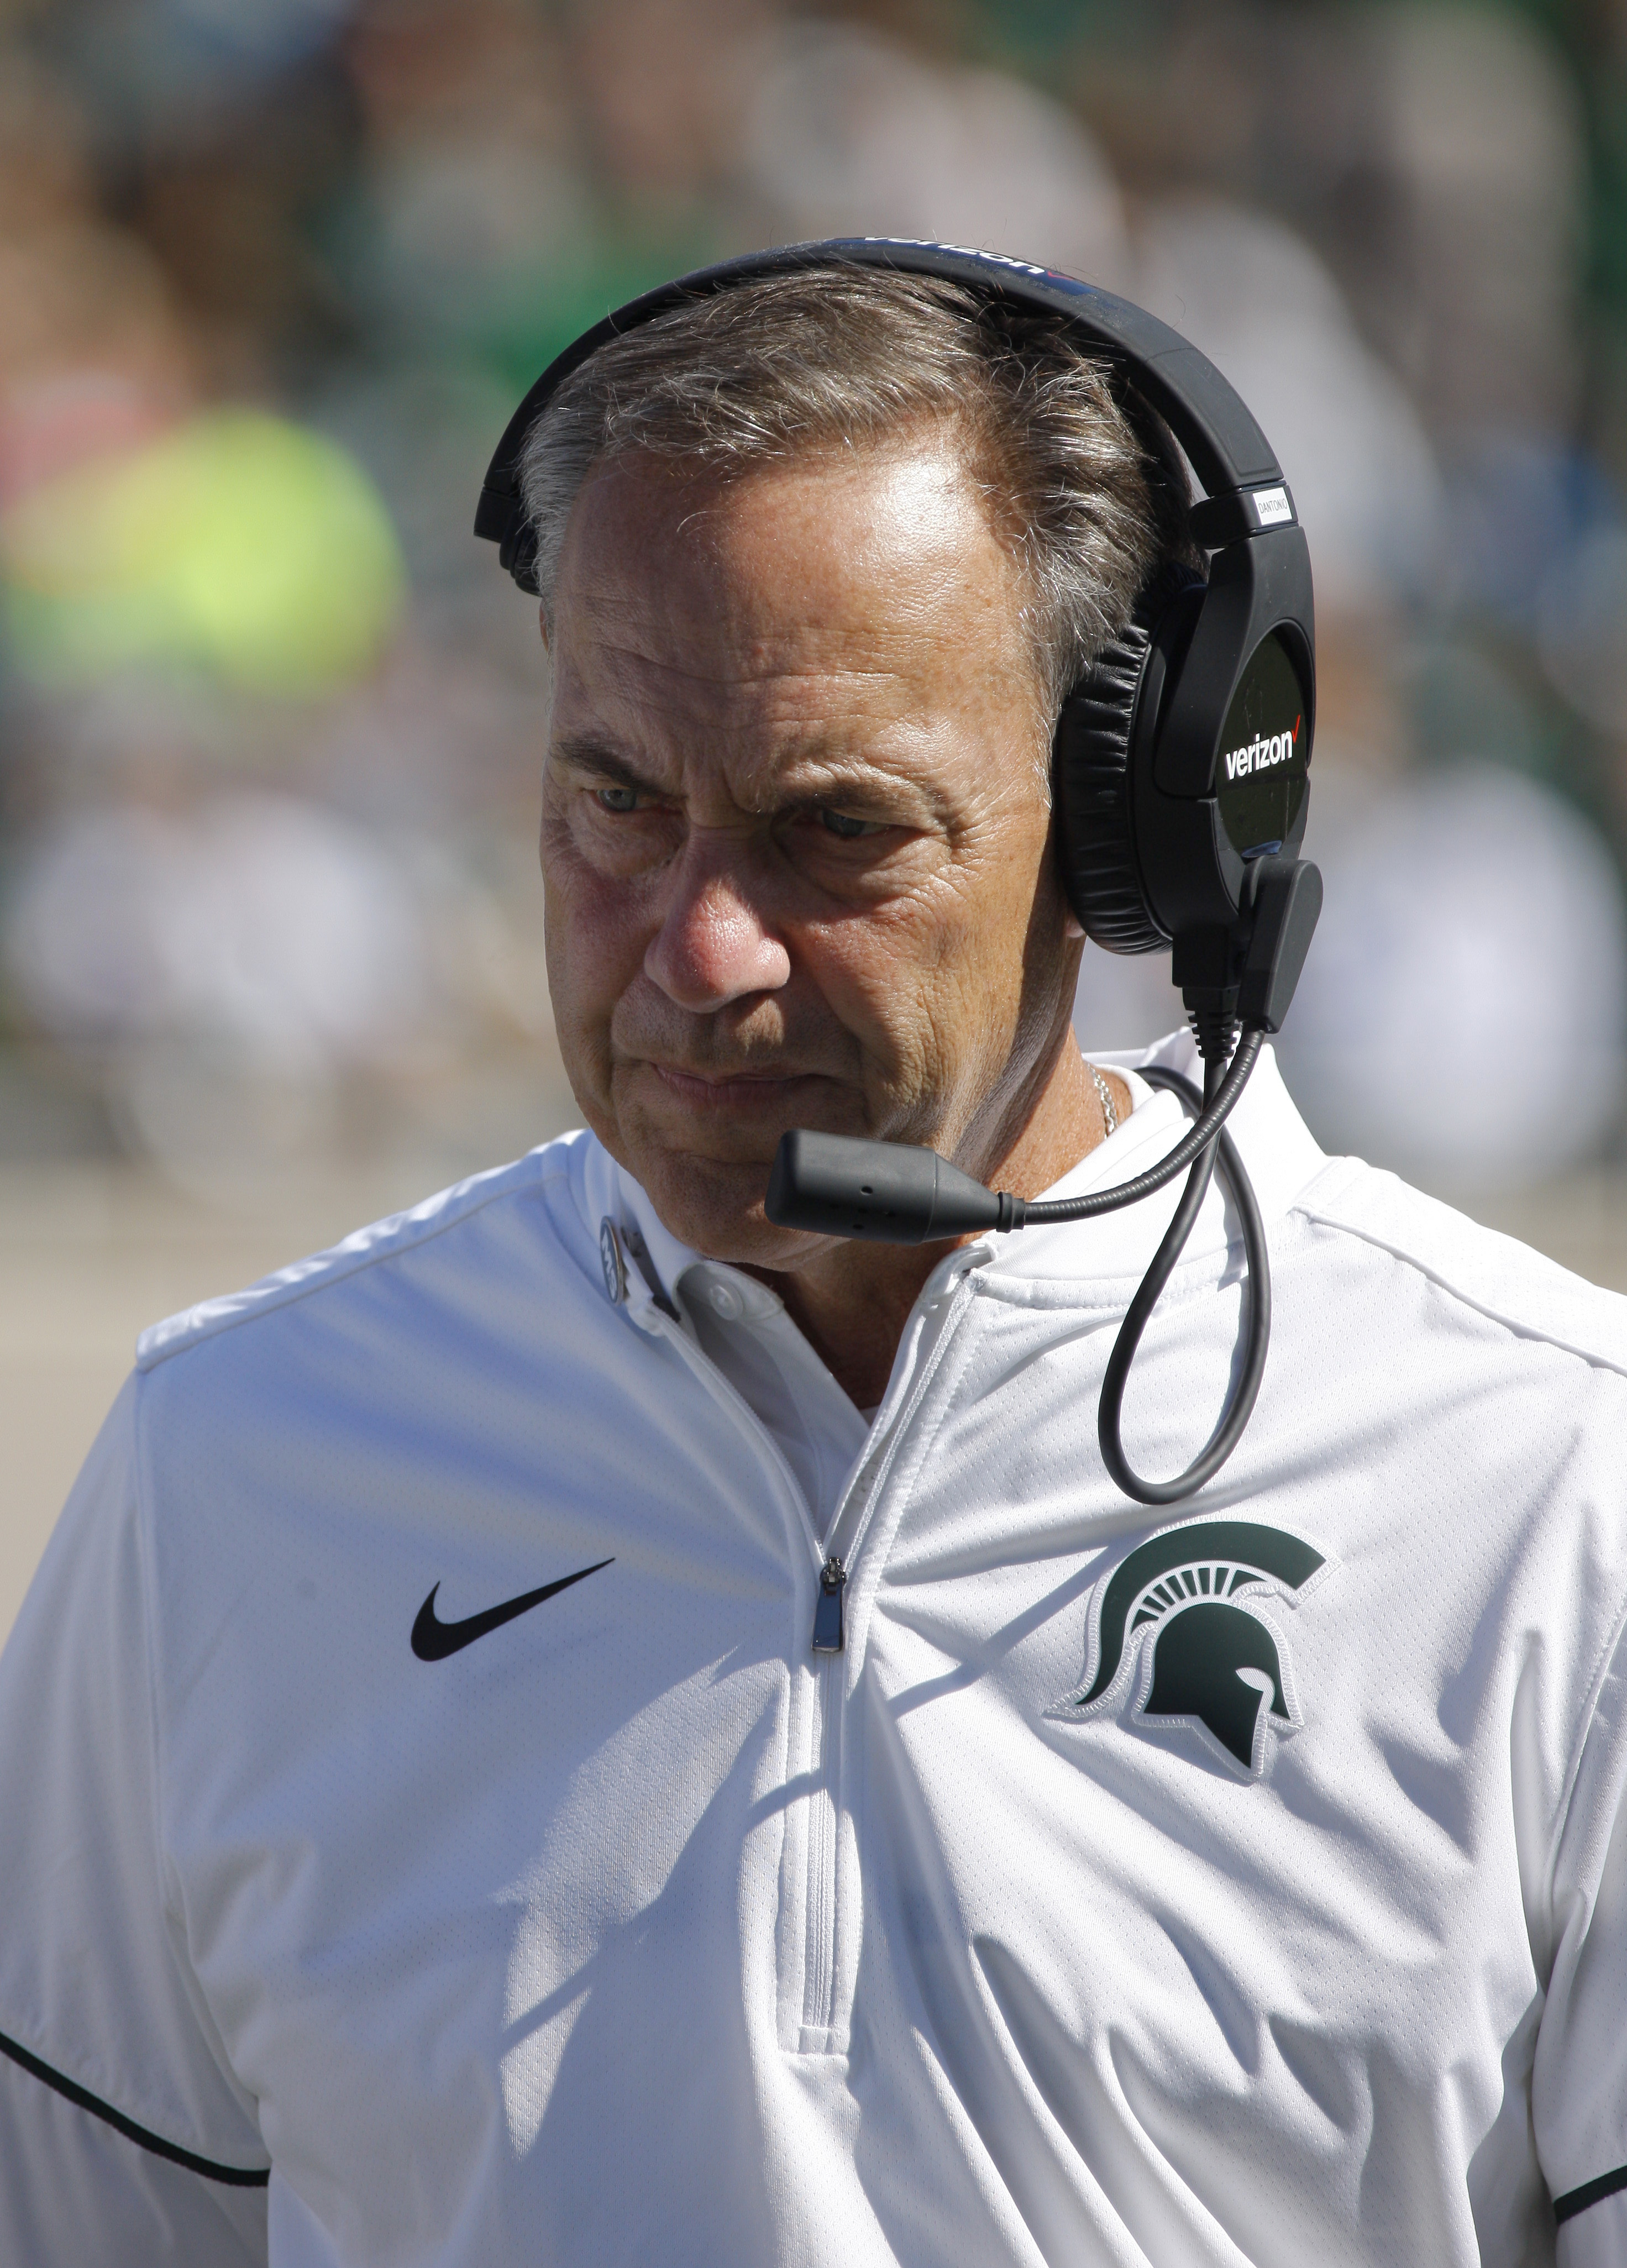 Michigan State coach Mark Dantonio walks the sideline during the fourth quarter of an NCAA college football game against Wisconsin, Saturday, Sept. 24, 2016, in East Lansing, Mich. Wisconsin won 30-6. (AP Photo/Al Goldis)